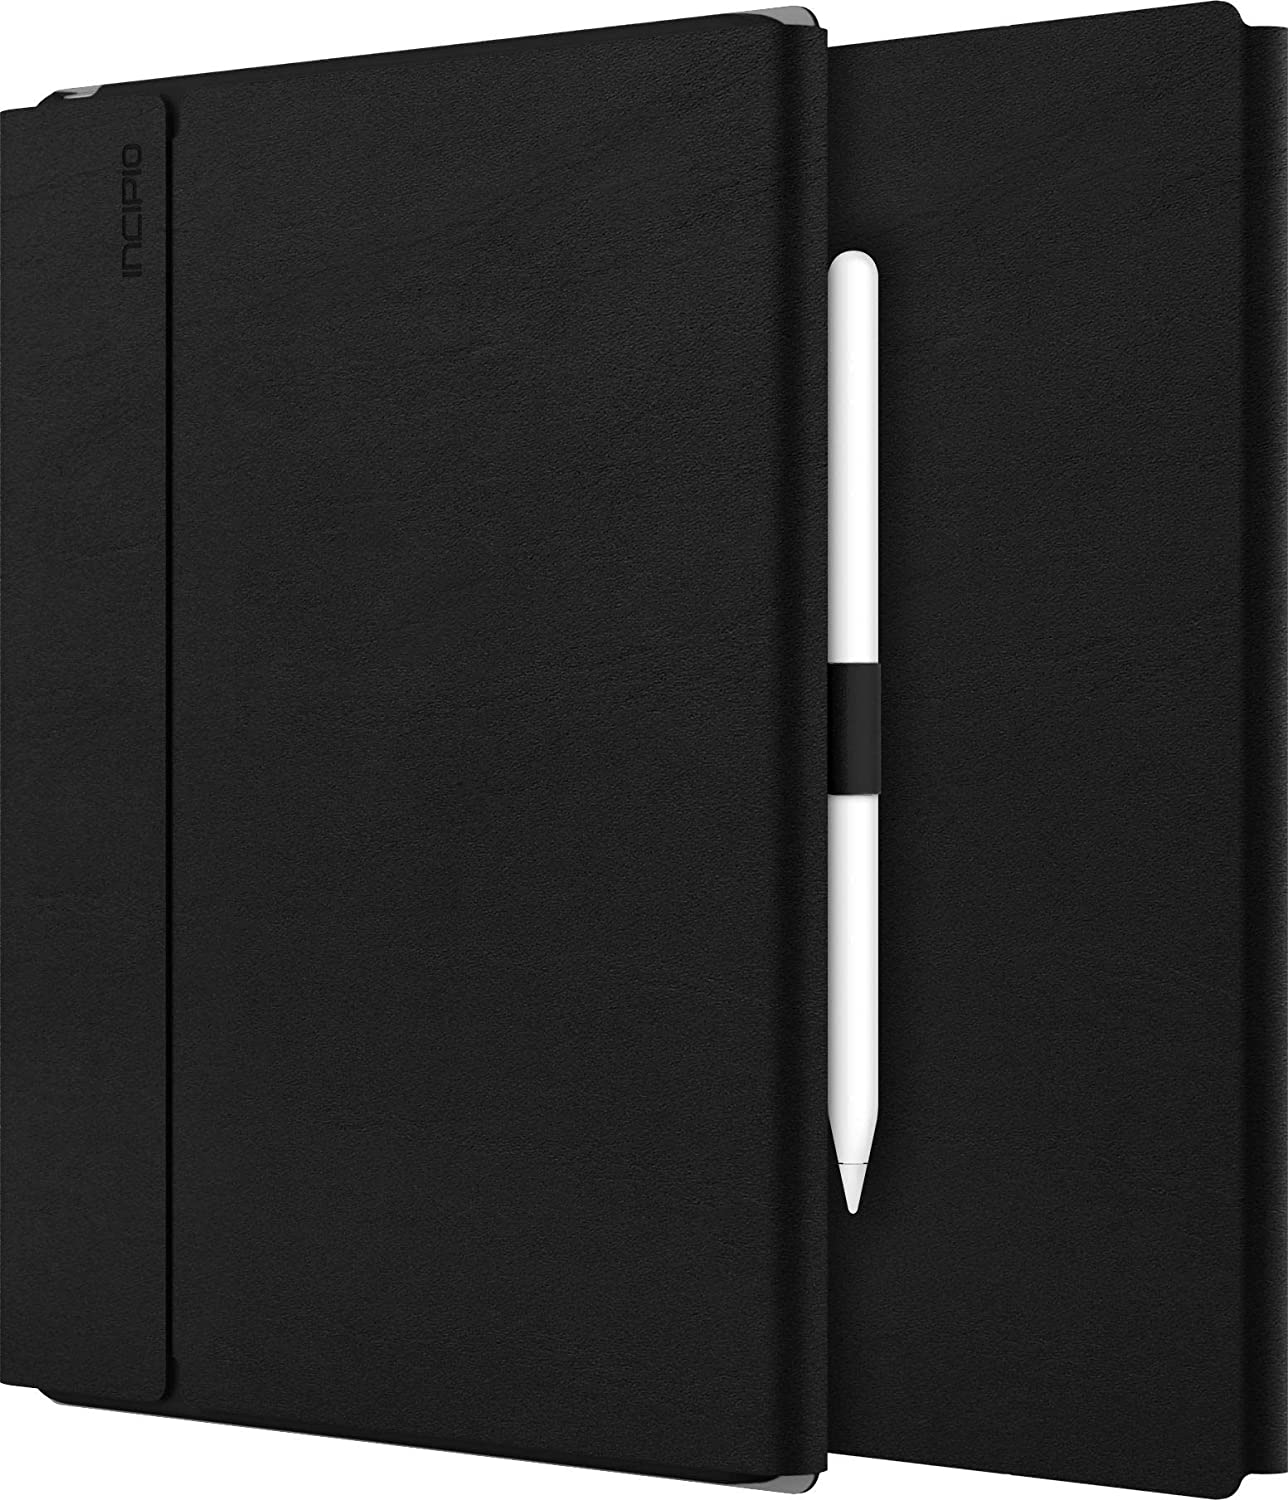 """Incipio Faraday Folio Case Apple 12.9"""" iPad Pro (2018) - Charging Mode of Apple Pencil 2. Gen Compatible – Black [Wake/Sleep I Artificial Leather I Stand Function I Magnetic Closure] – IPD-400-BLK"""